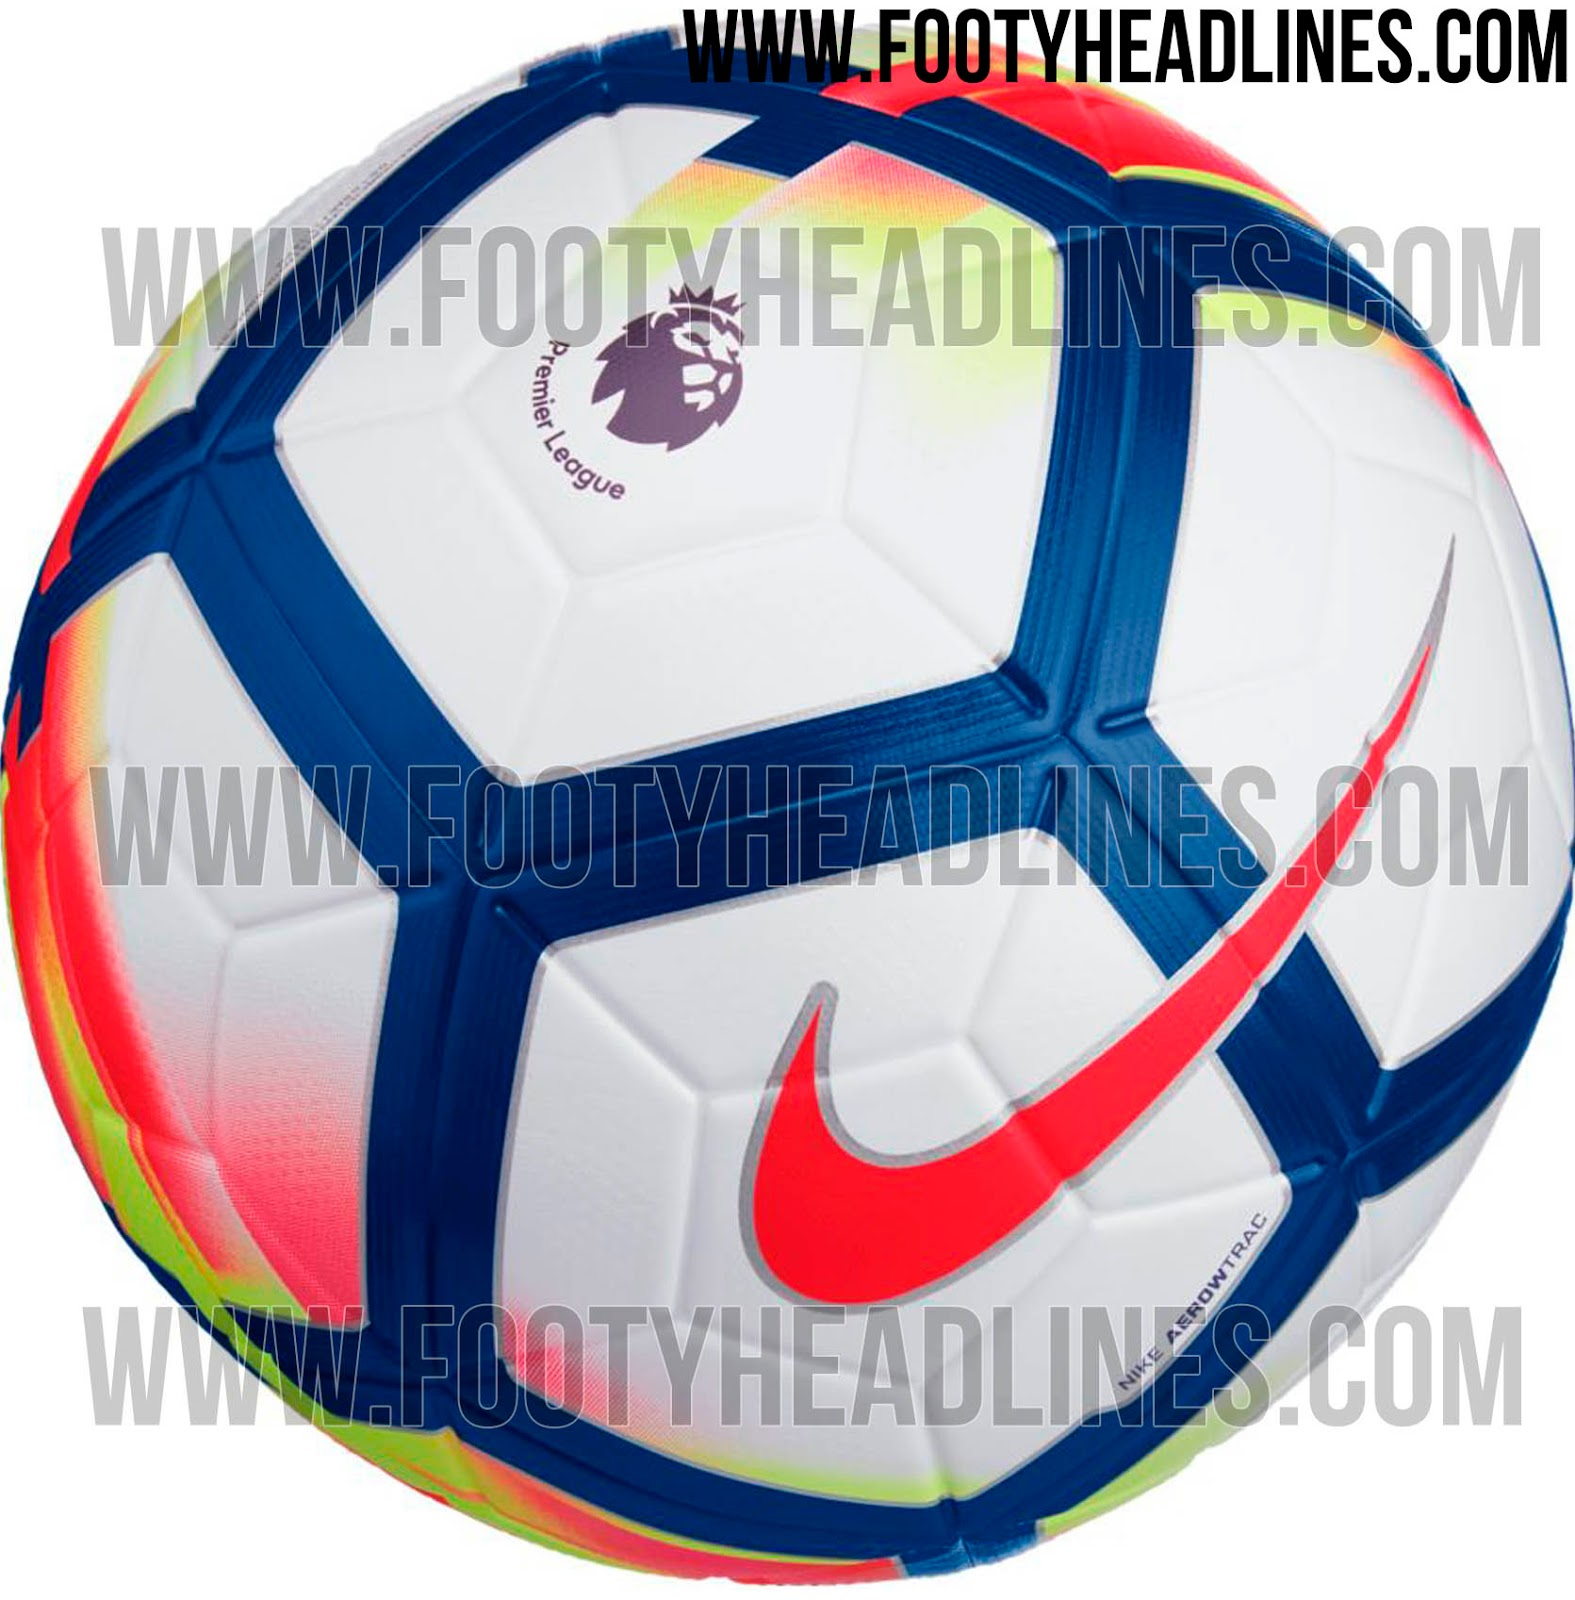 Nike 2017-18 Premier League Ball Leaked